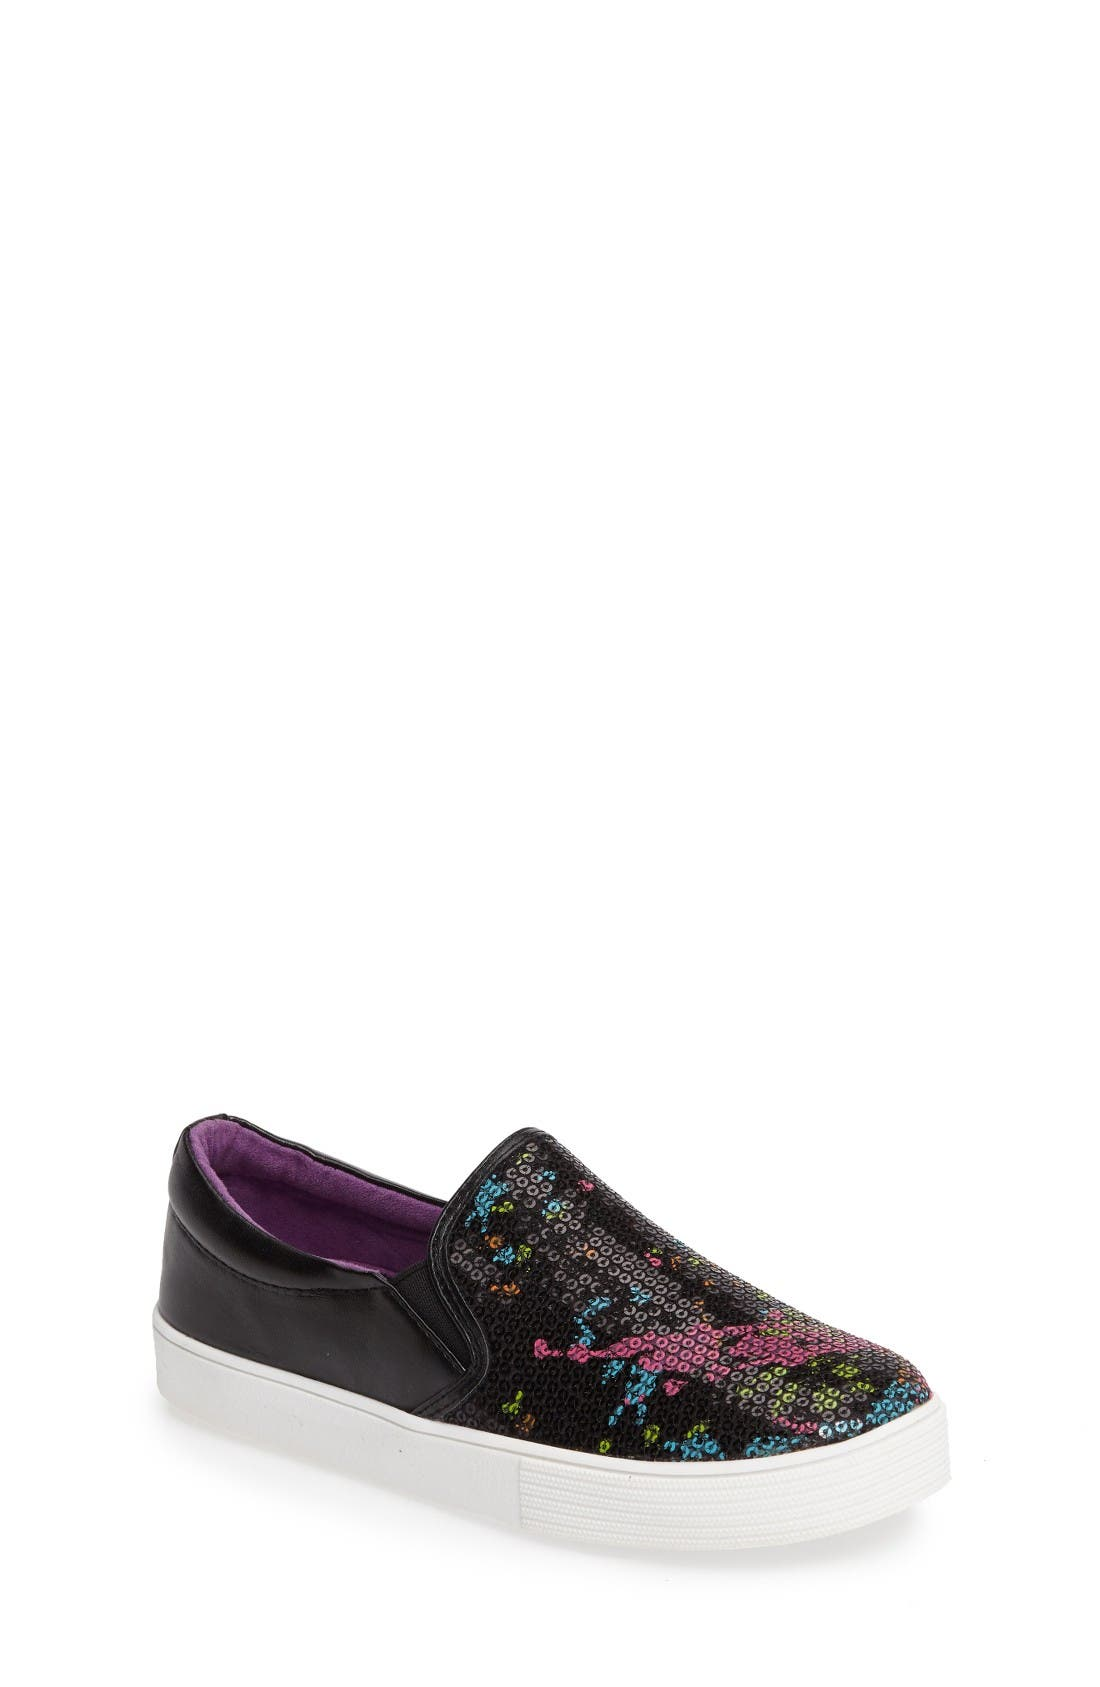 KENNETH COLE NEW YORK Kam Paint Slip-On Sneaker